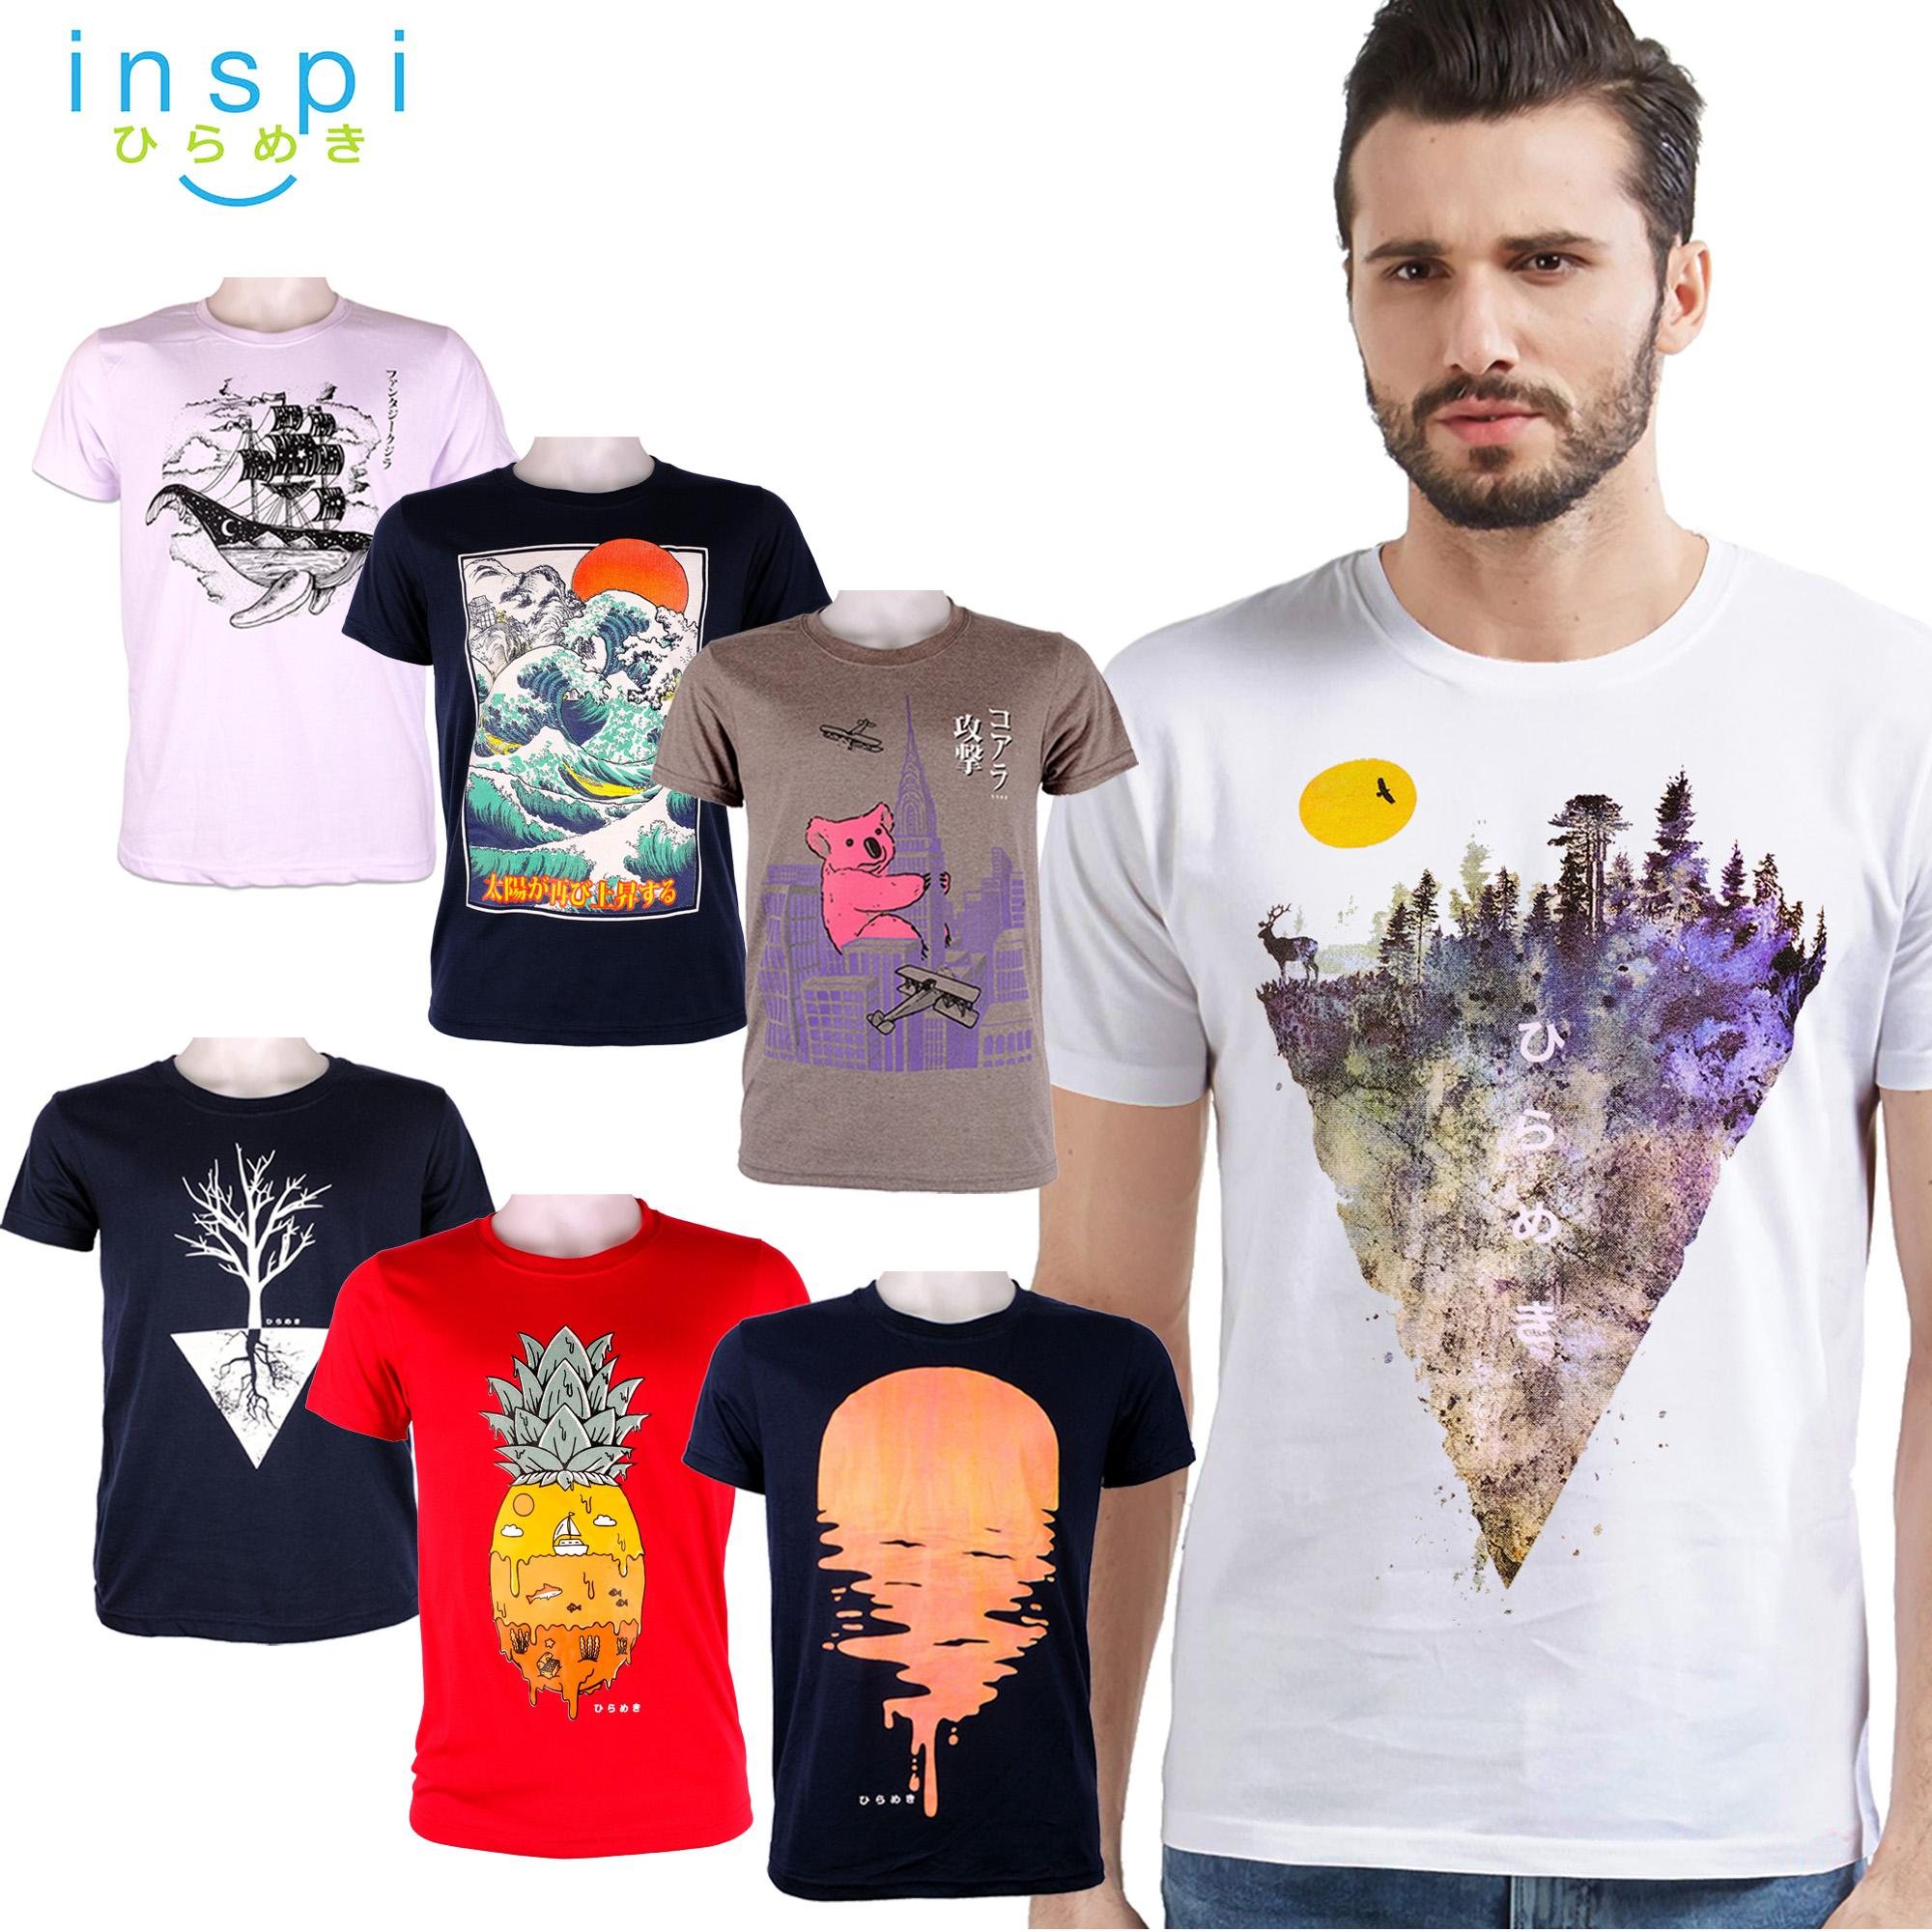 4bdbe8225fe INSPI Tees Nature Collection tshirt printed graphic tee Mens t shirt shirts  for men tshirts sale